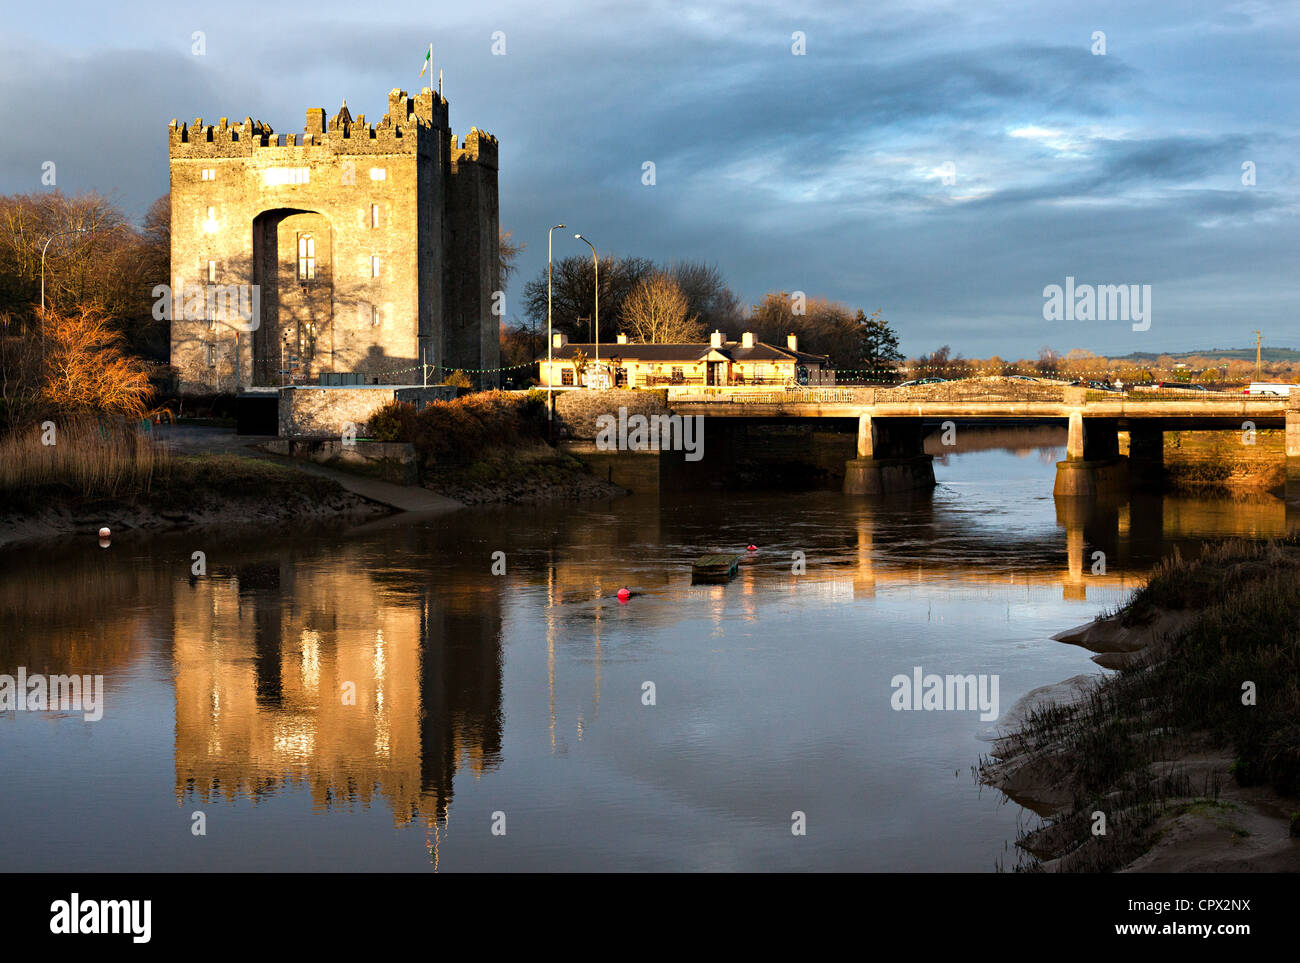 Bunratty castle, bunratty, county clare, ireland - Stock Image